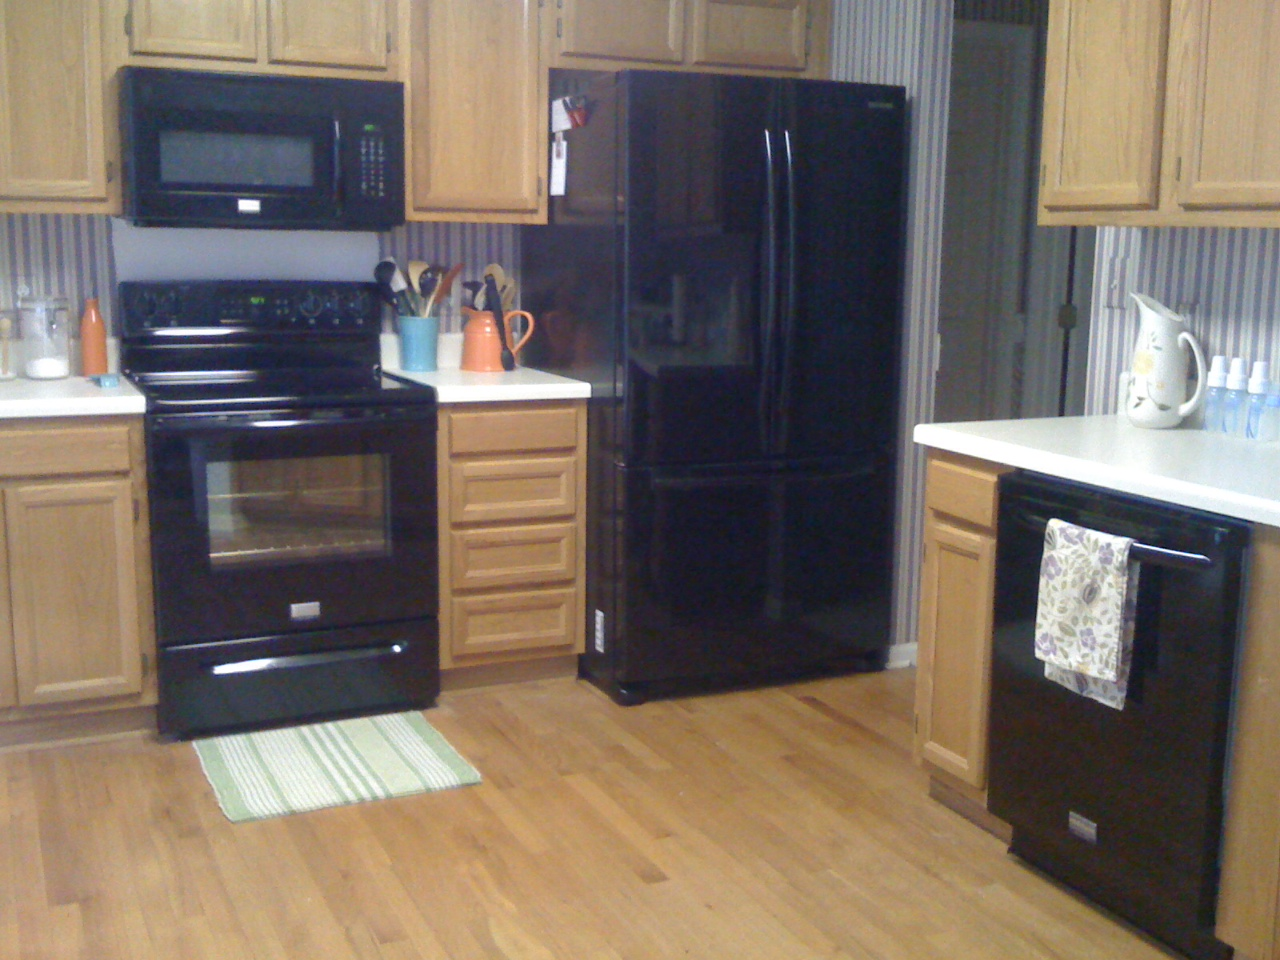 superb Black Kitchen Appliances Packages #1: kitchen appliances